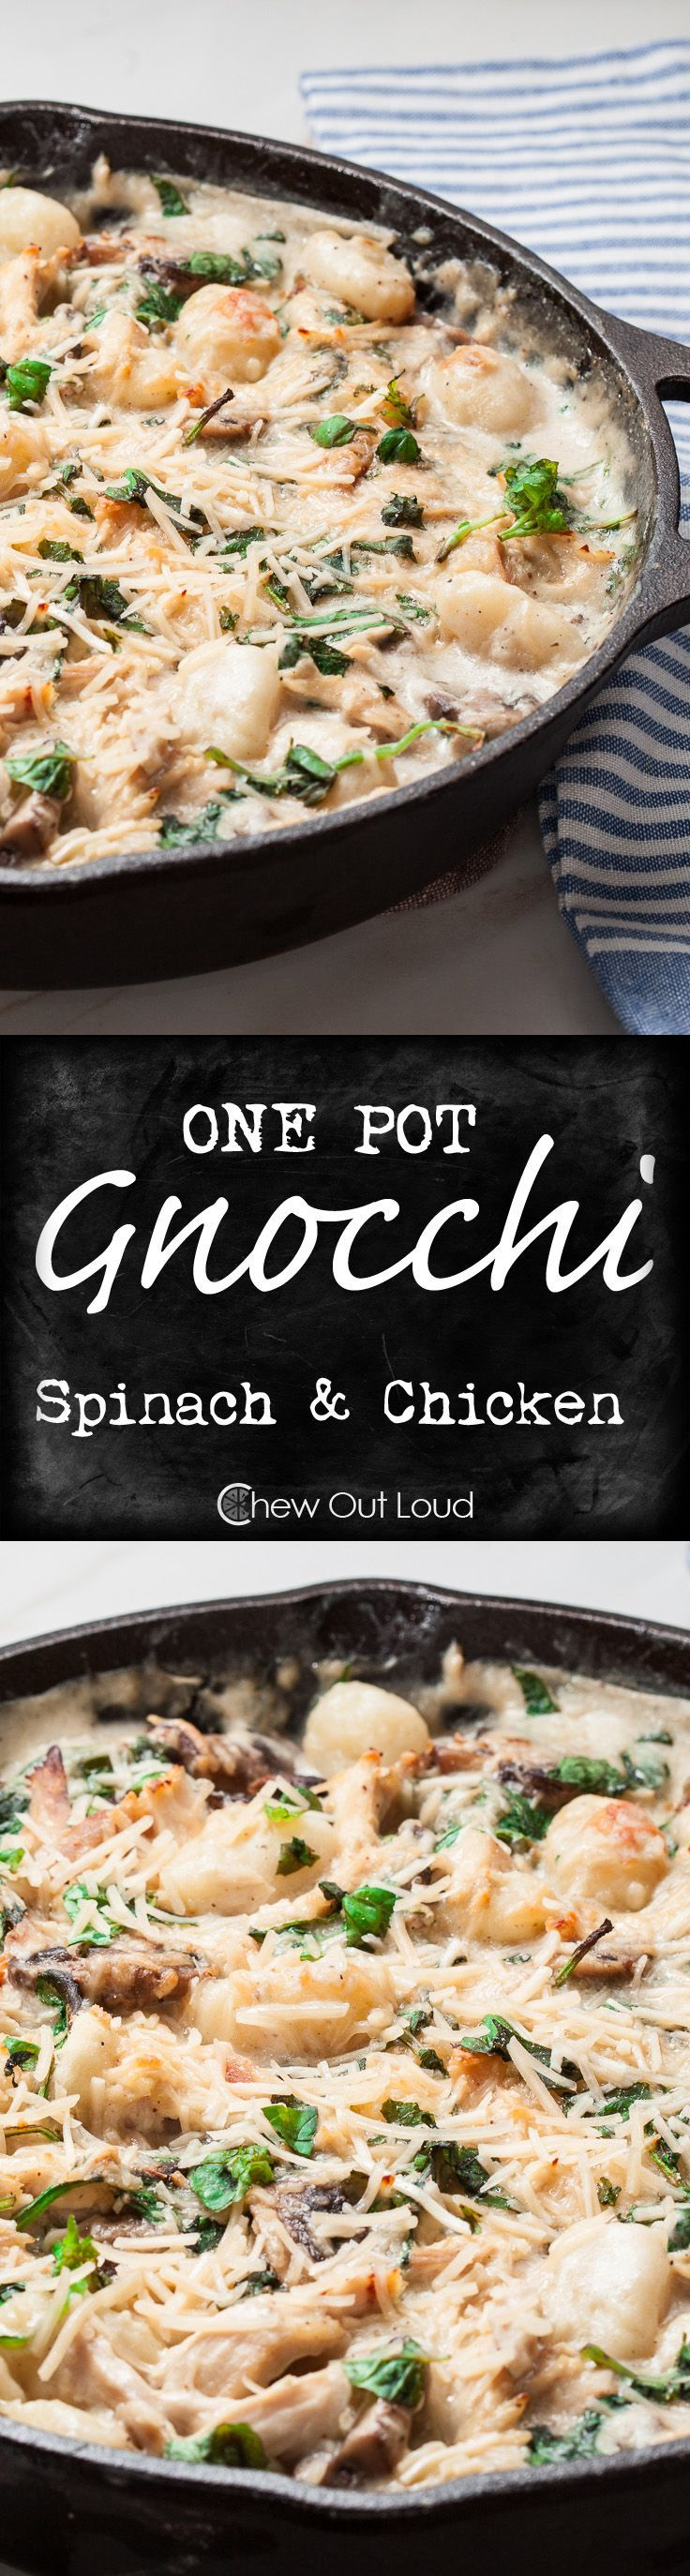 One-Pot Gnocchi with Spinach and Chicken. So easy and outstandingly delish! Flavorful 'n quick weeknight dinner that's tasty enough for guests. #maindish #recipe